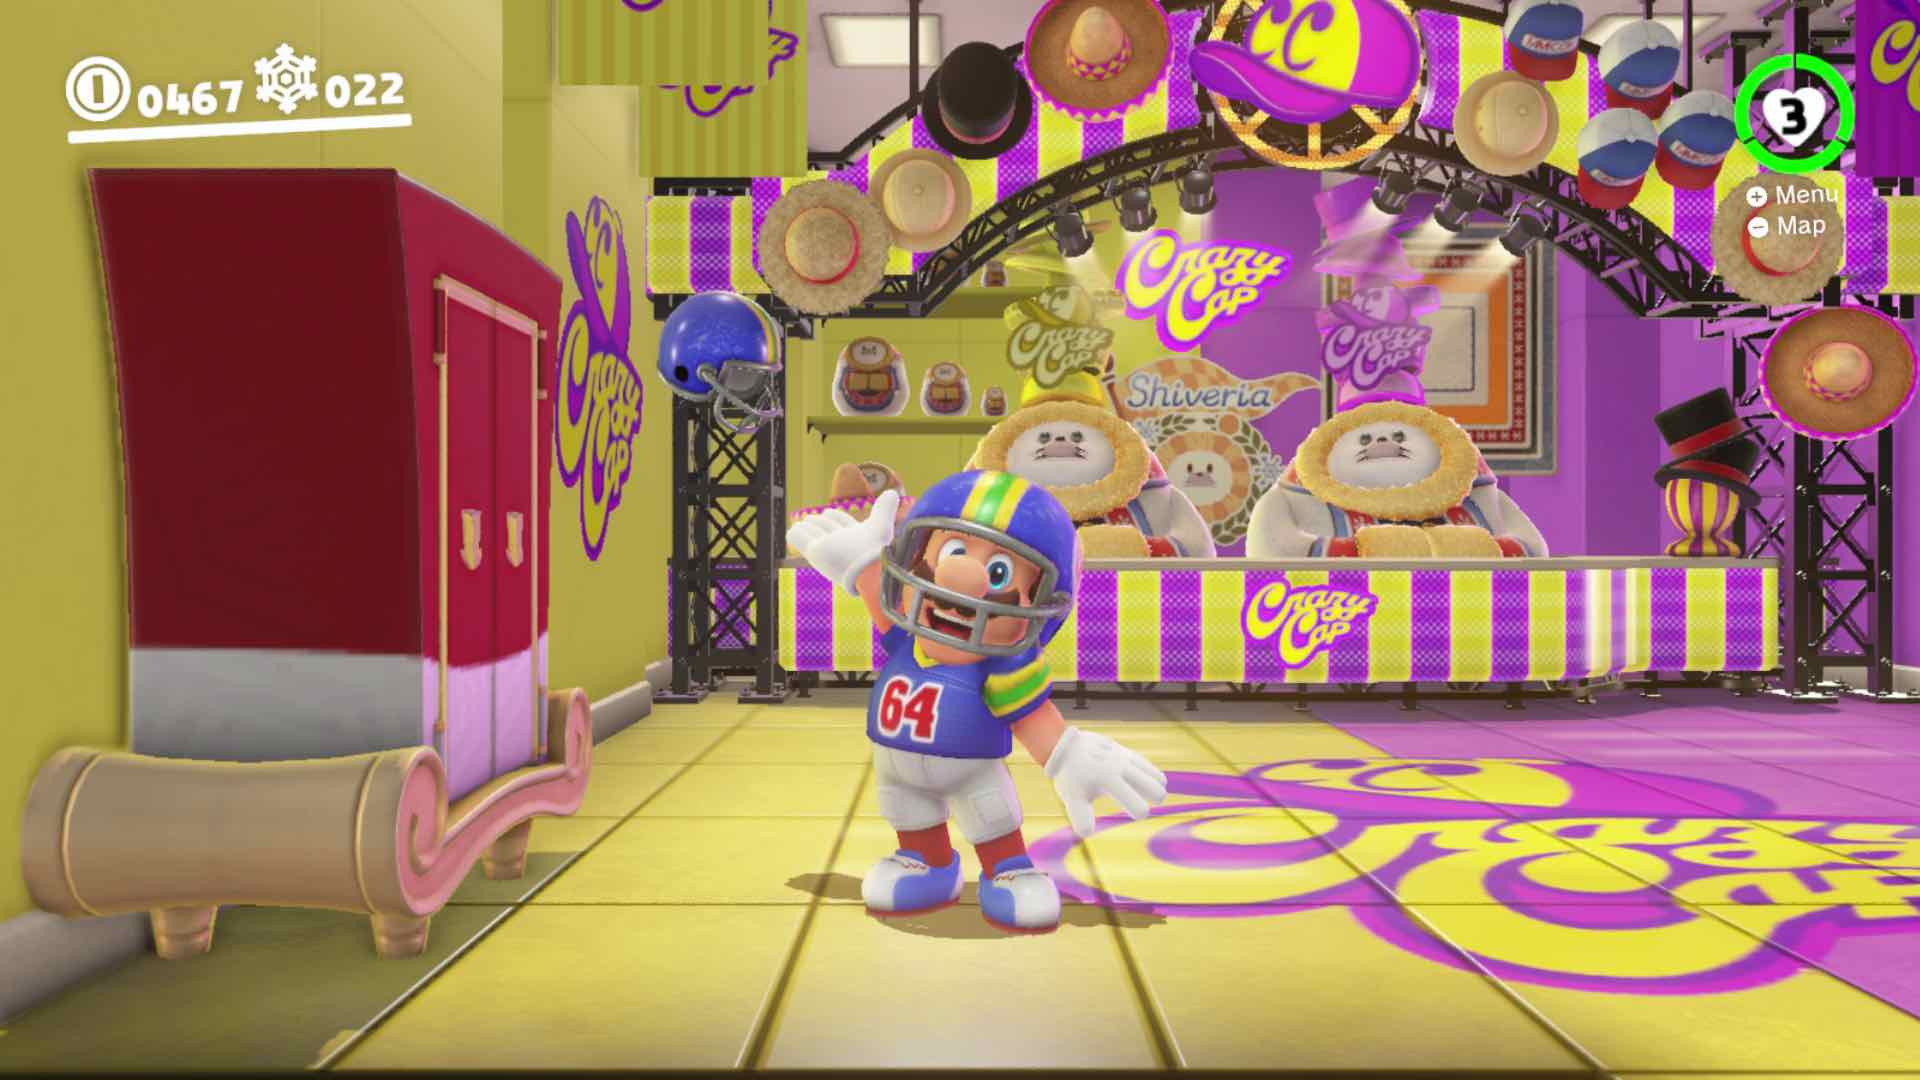 football-uniform-super-mario-odyssey-screenshot